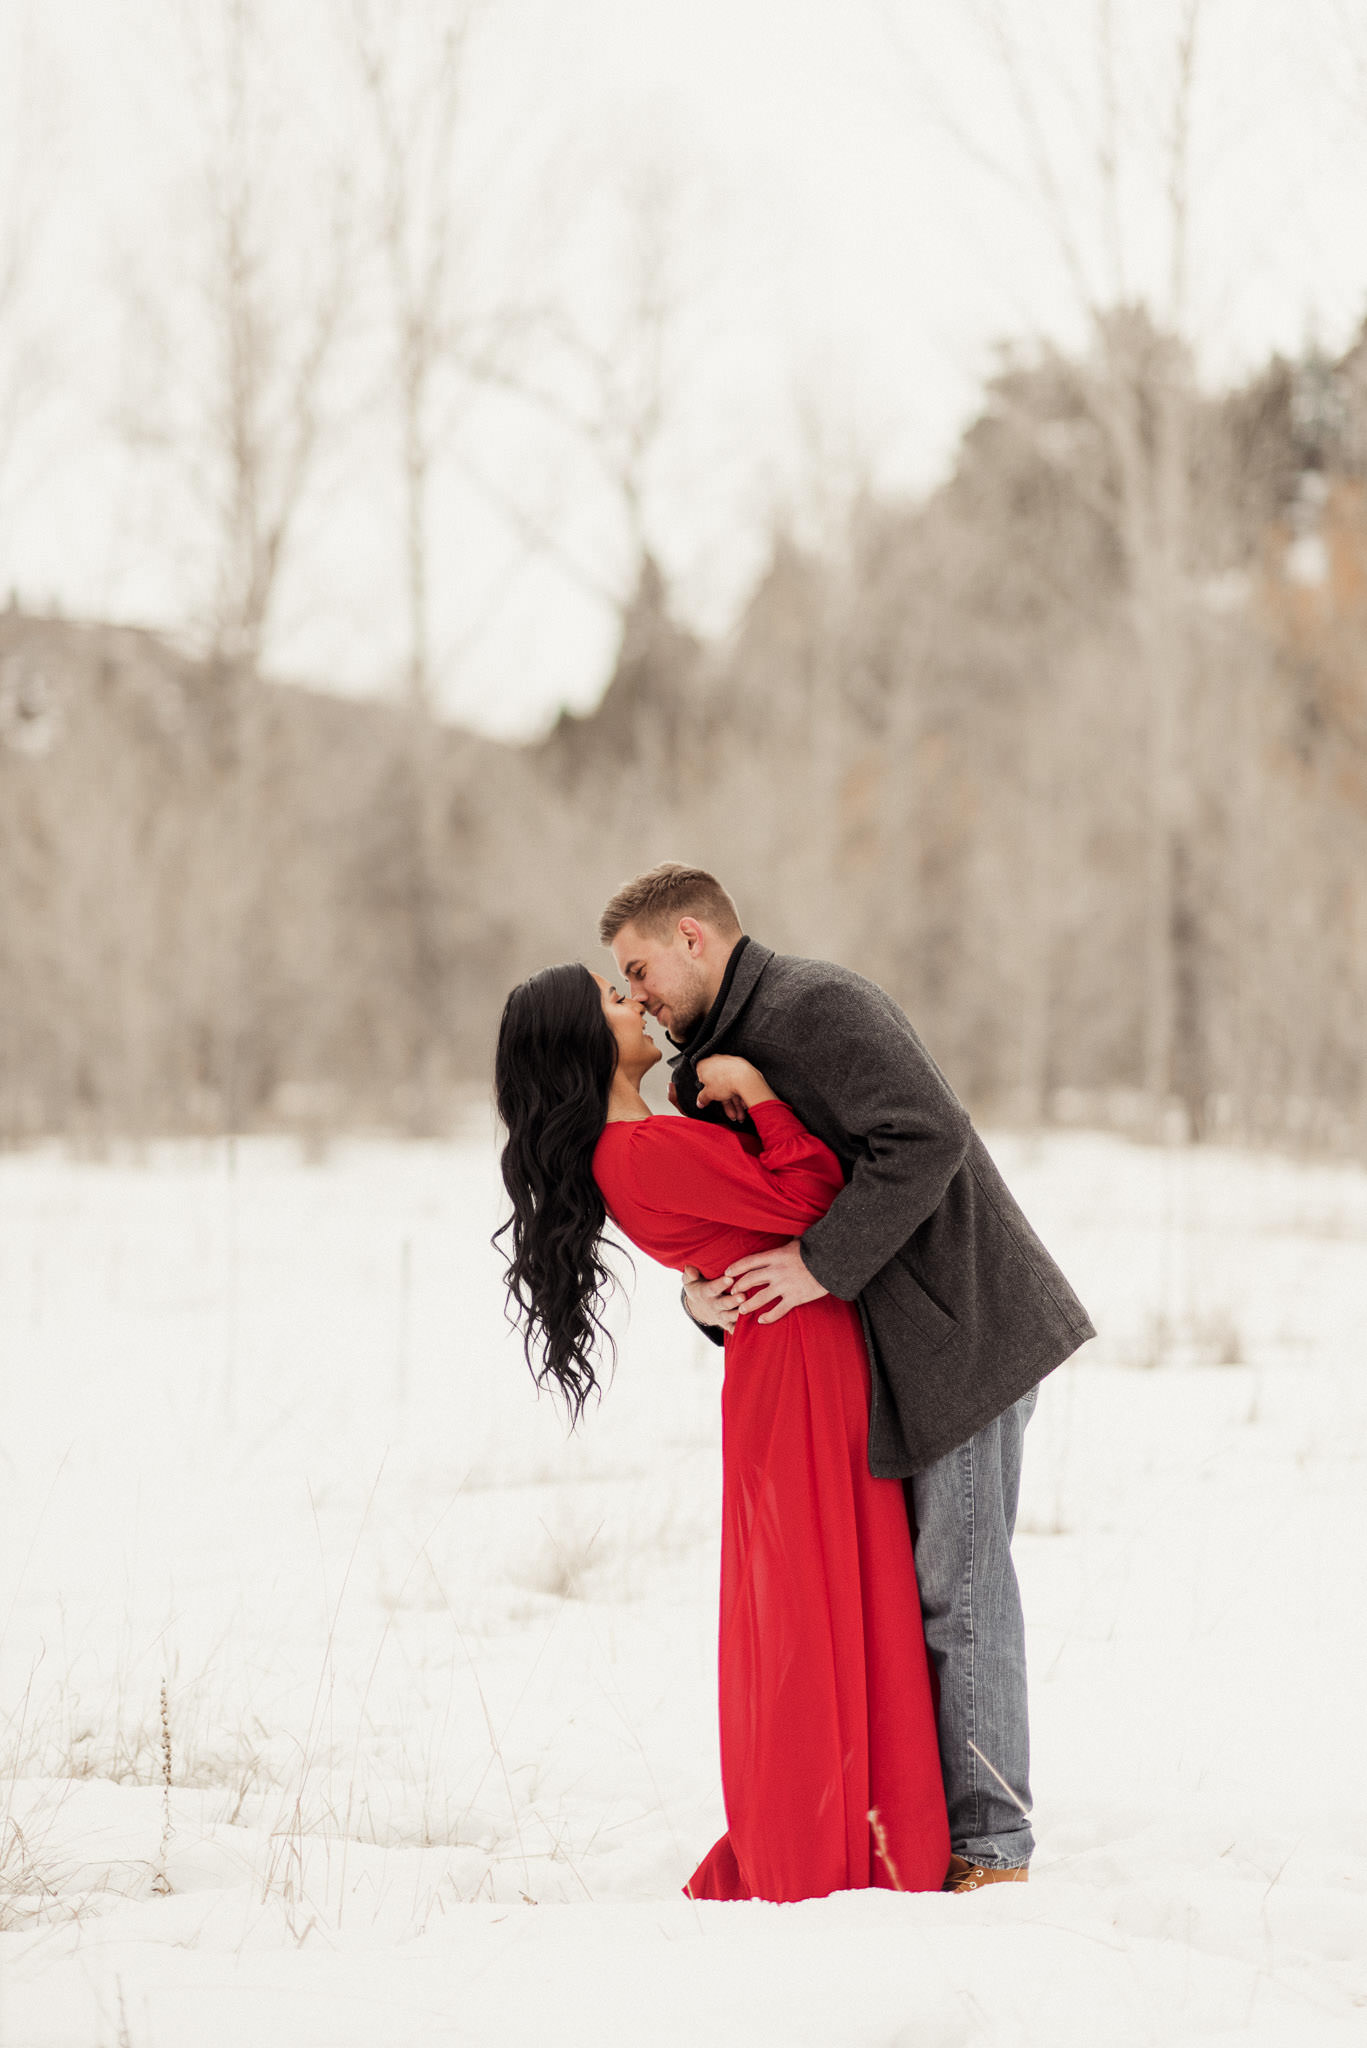 sandra-ryan-colorado-winter-snow-engagement-couples-valentines-red-houston-photographer-sm-26.jpg